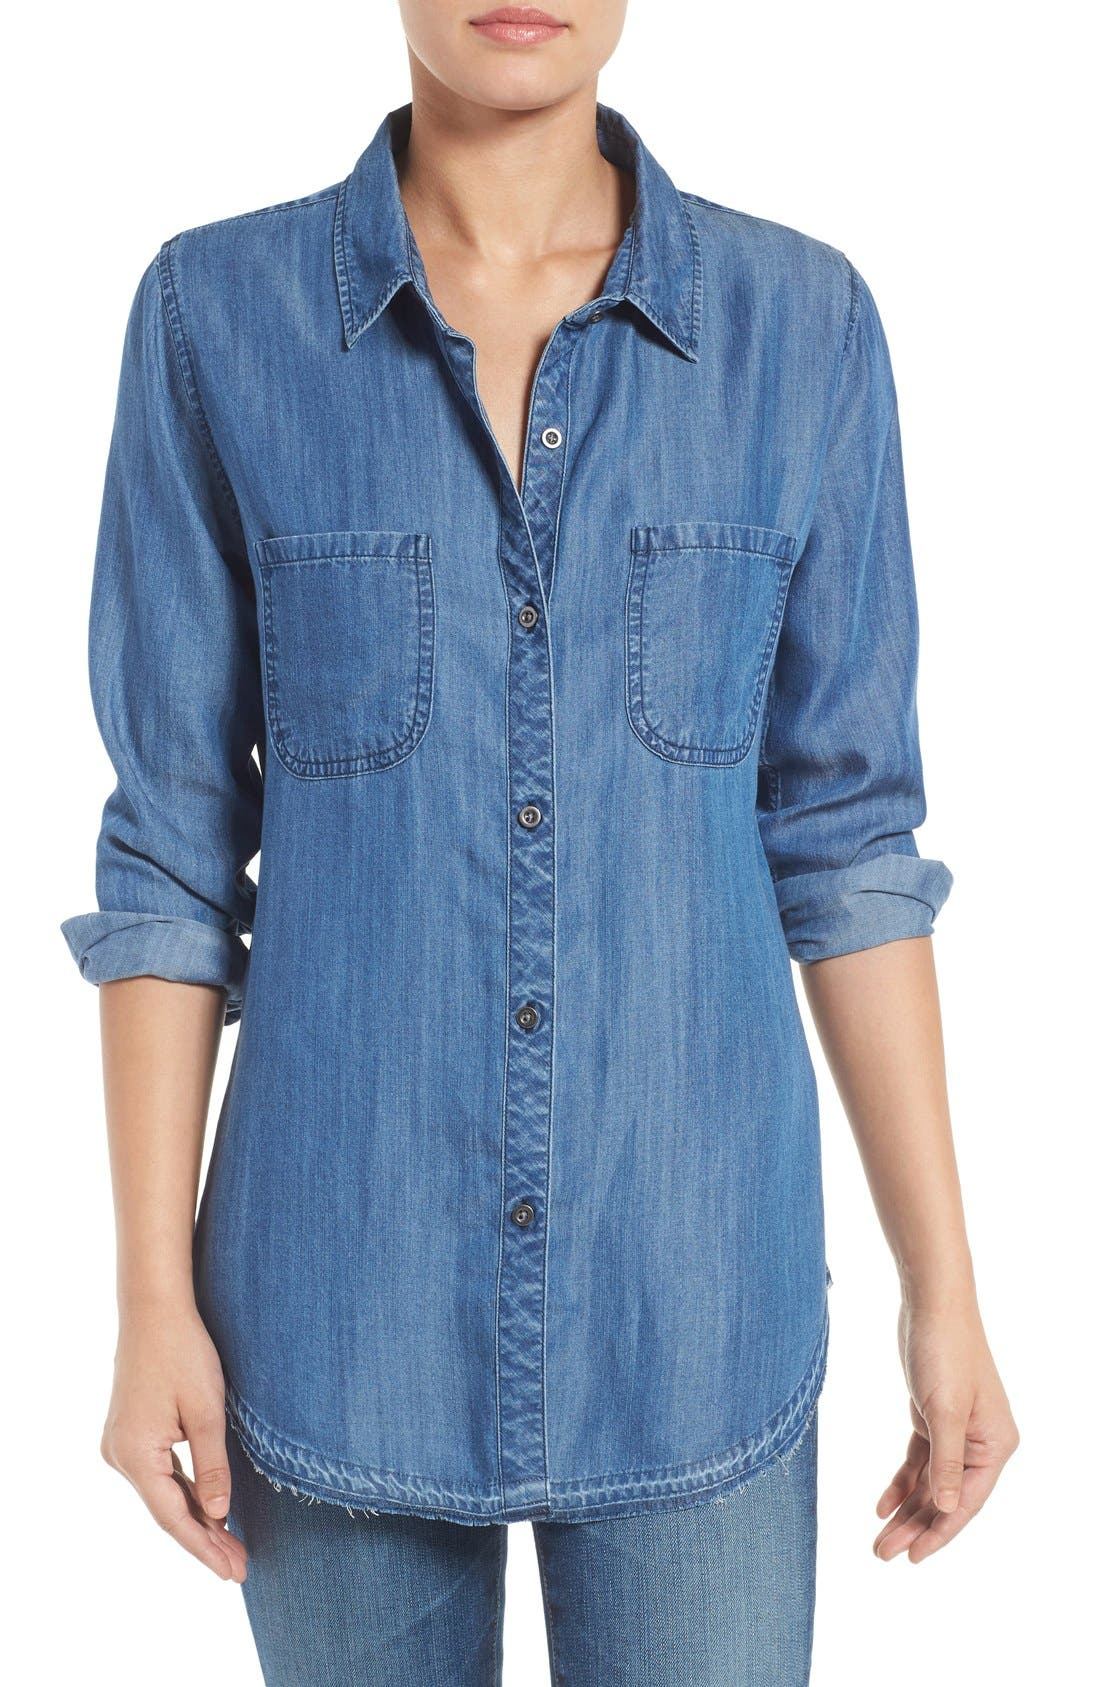 Sale alerts for  'Carter' Chambray Shirt - Covvet